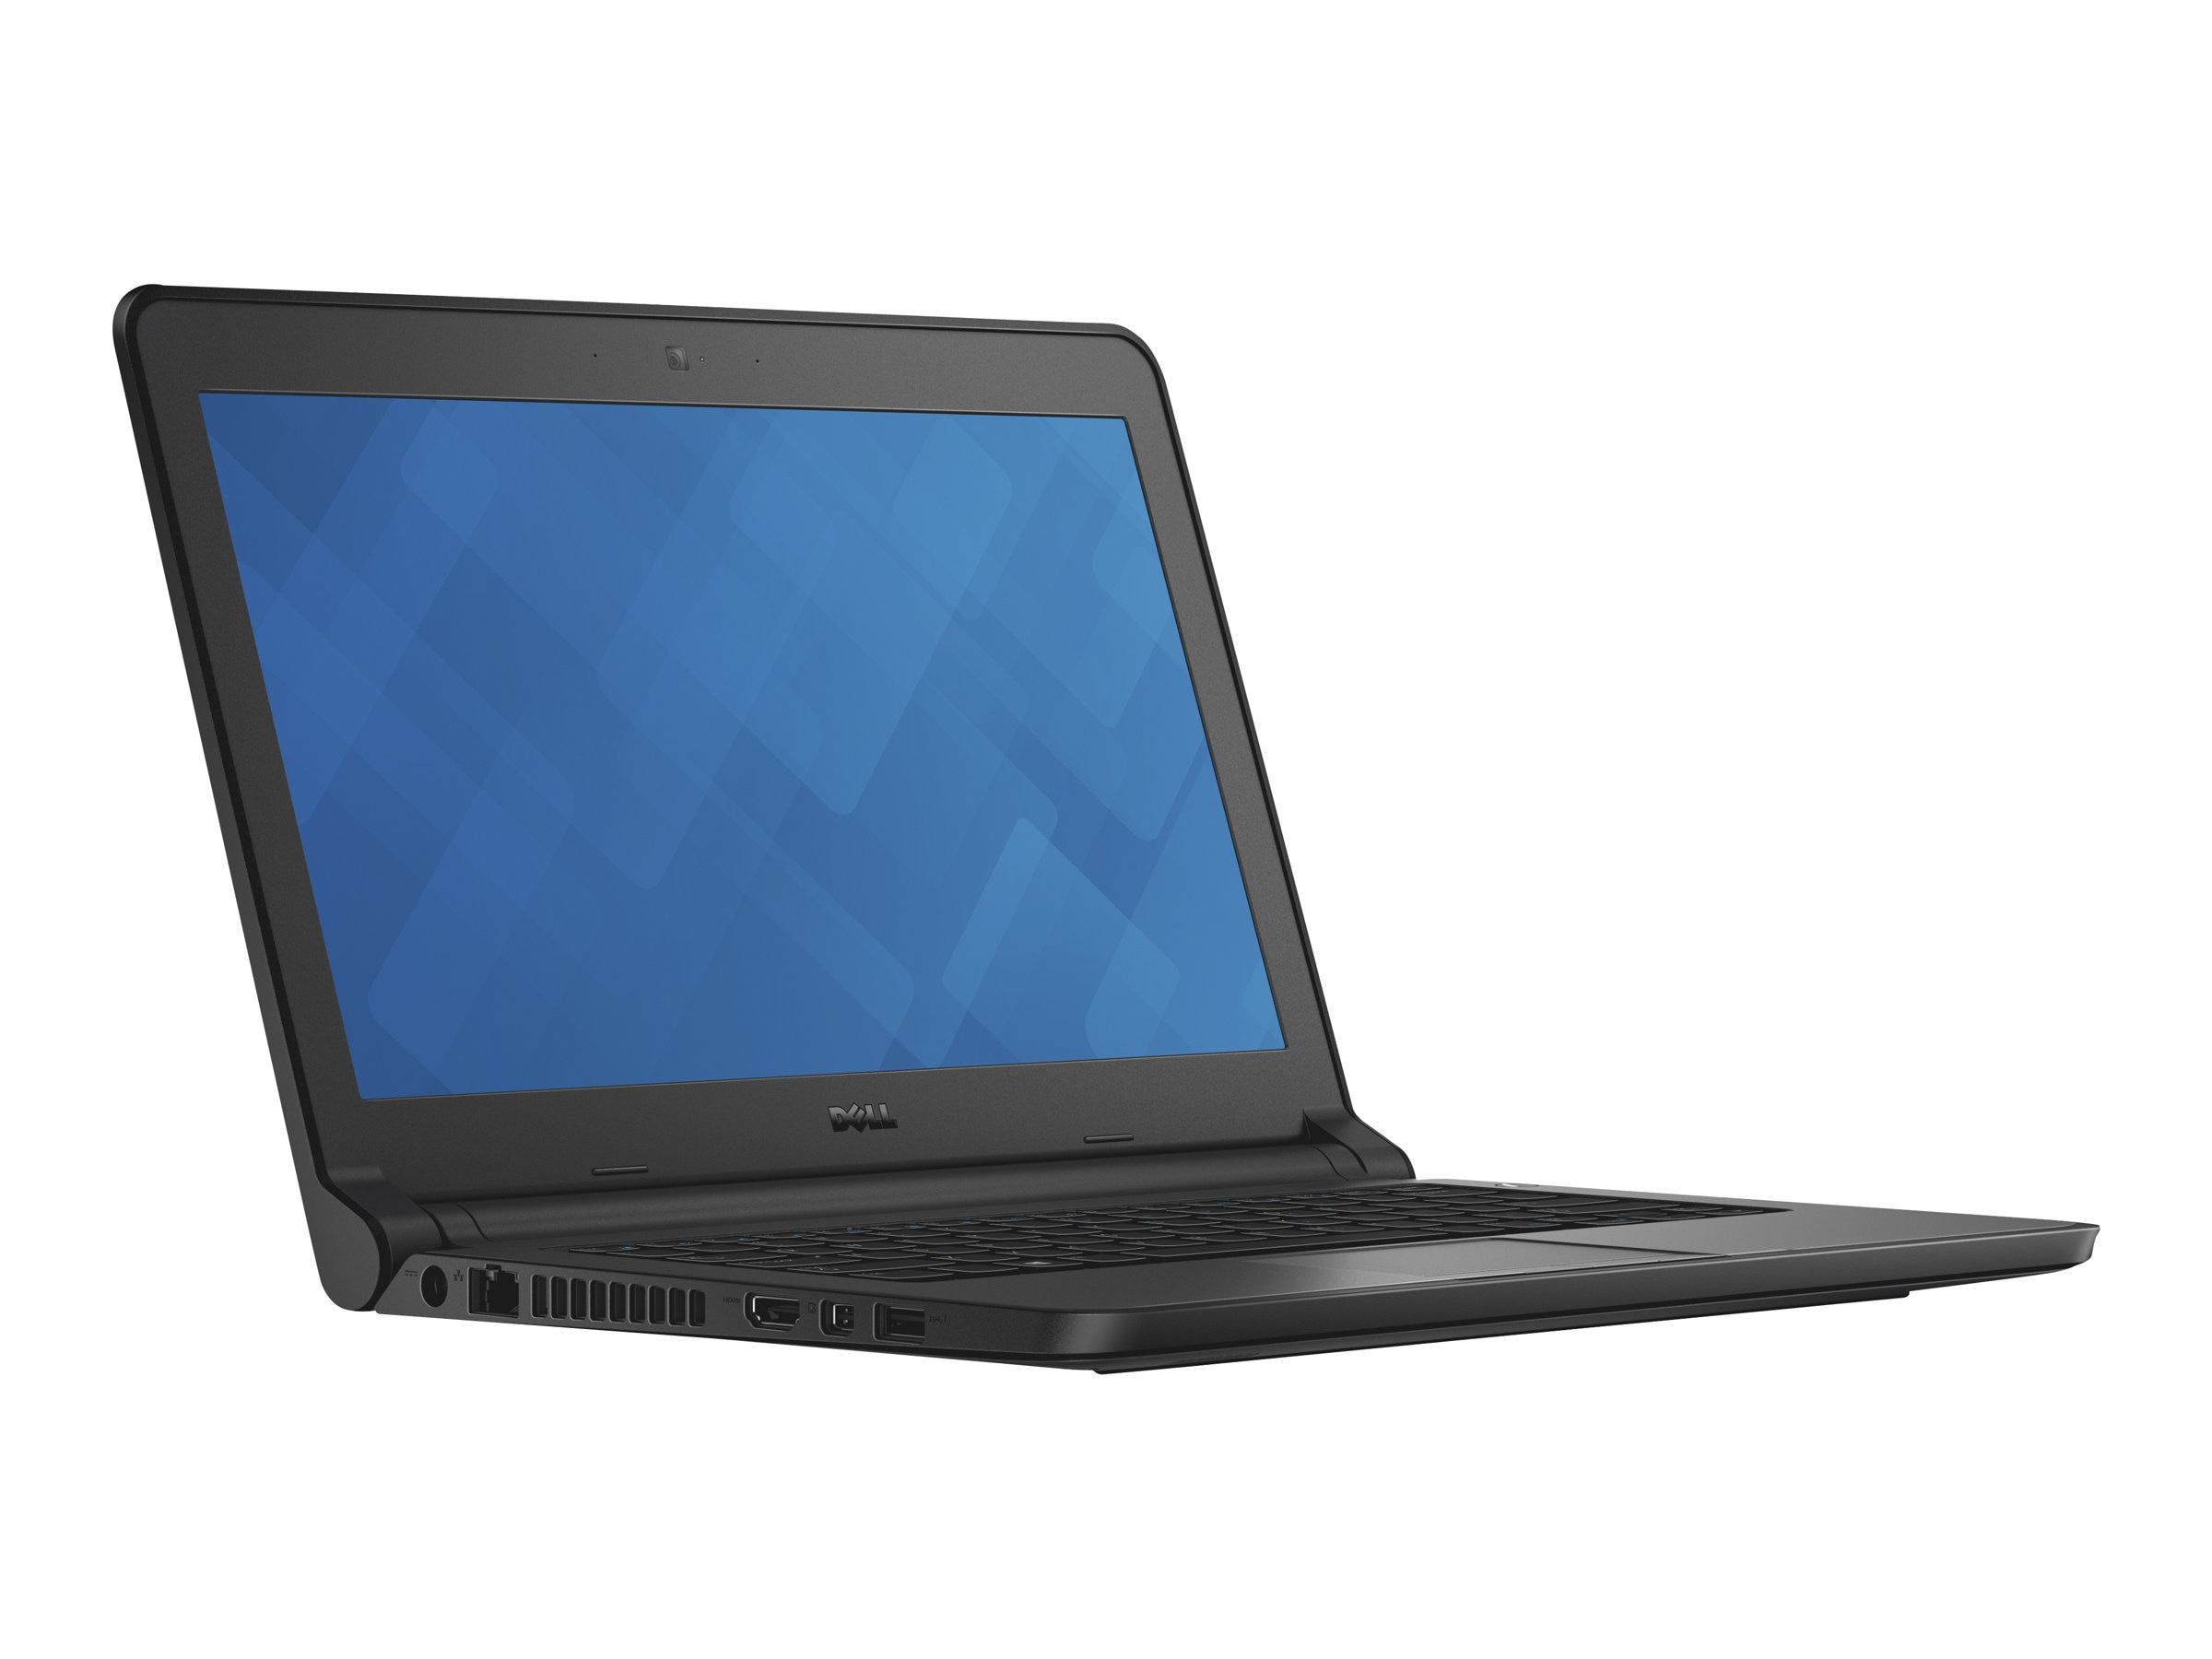 Dell WD5D5 Image 3